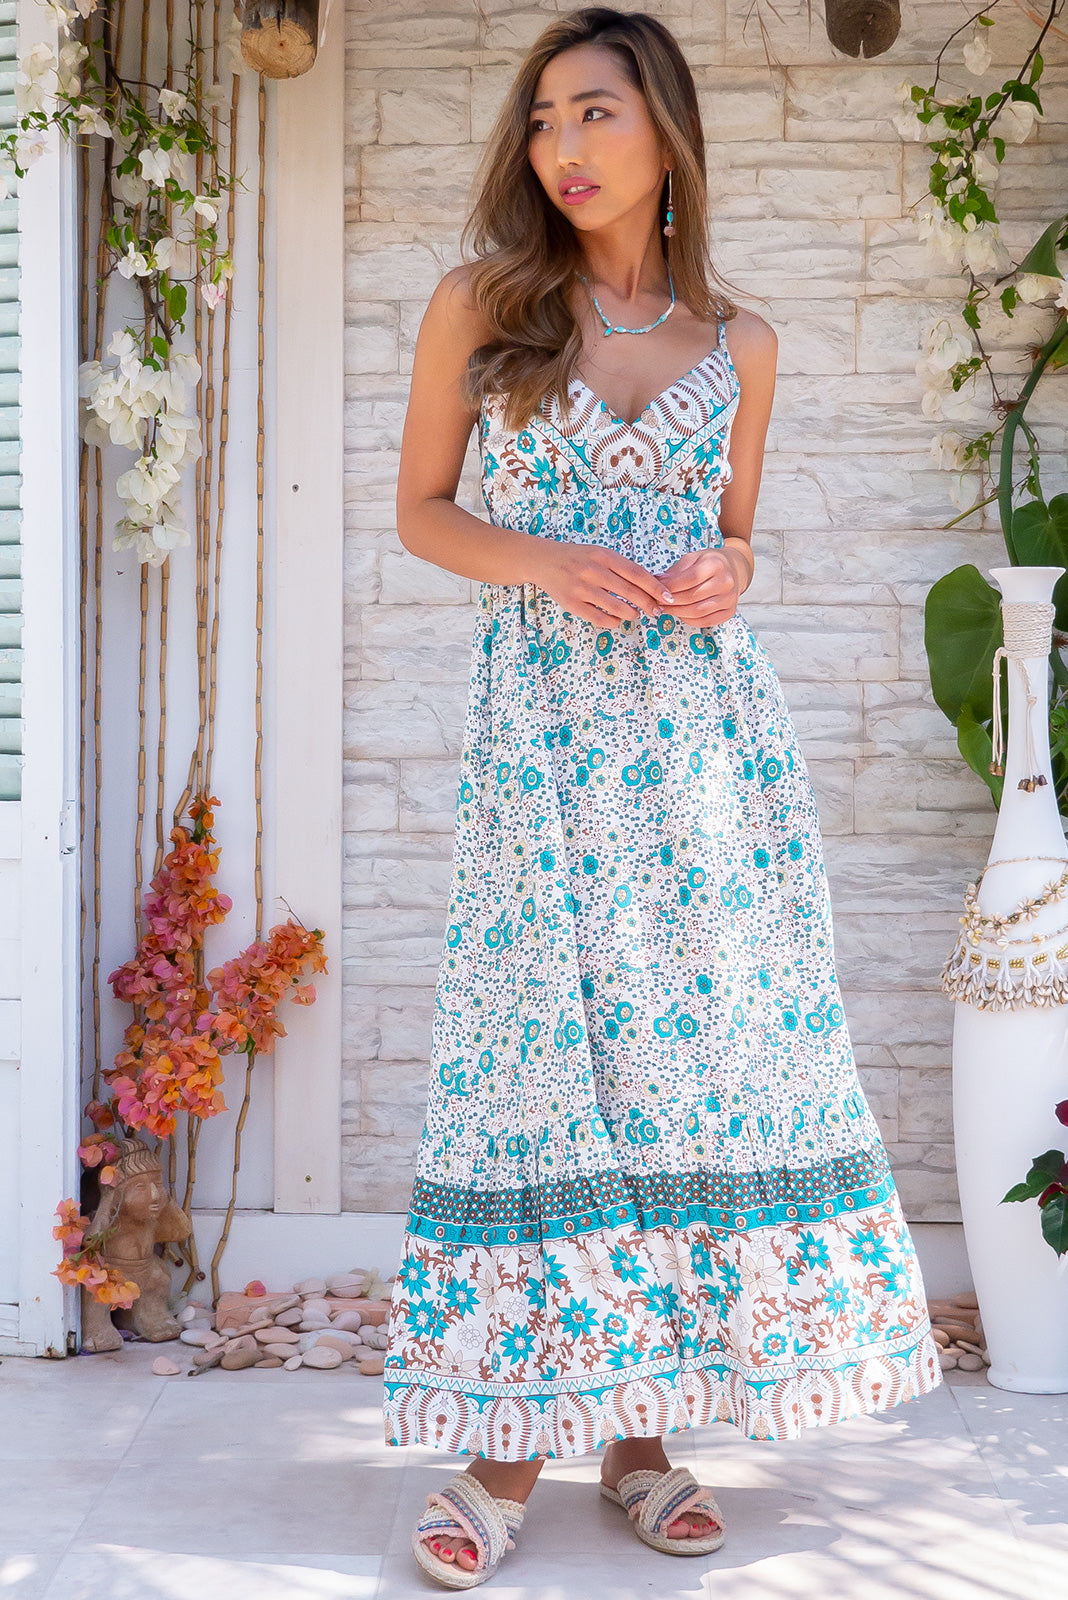 Sapphire Porto Teal Maxi Dress white floral printed dress in rayon fabric, with side pockets and adjustable straps.